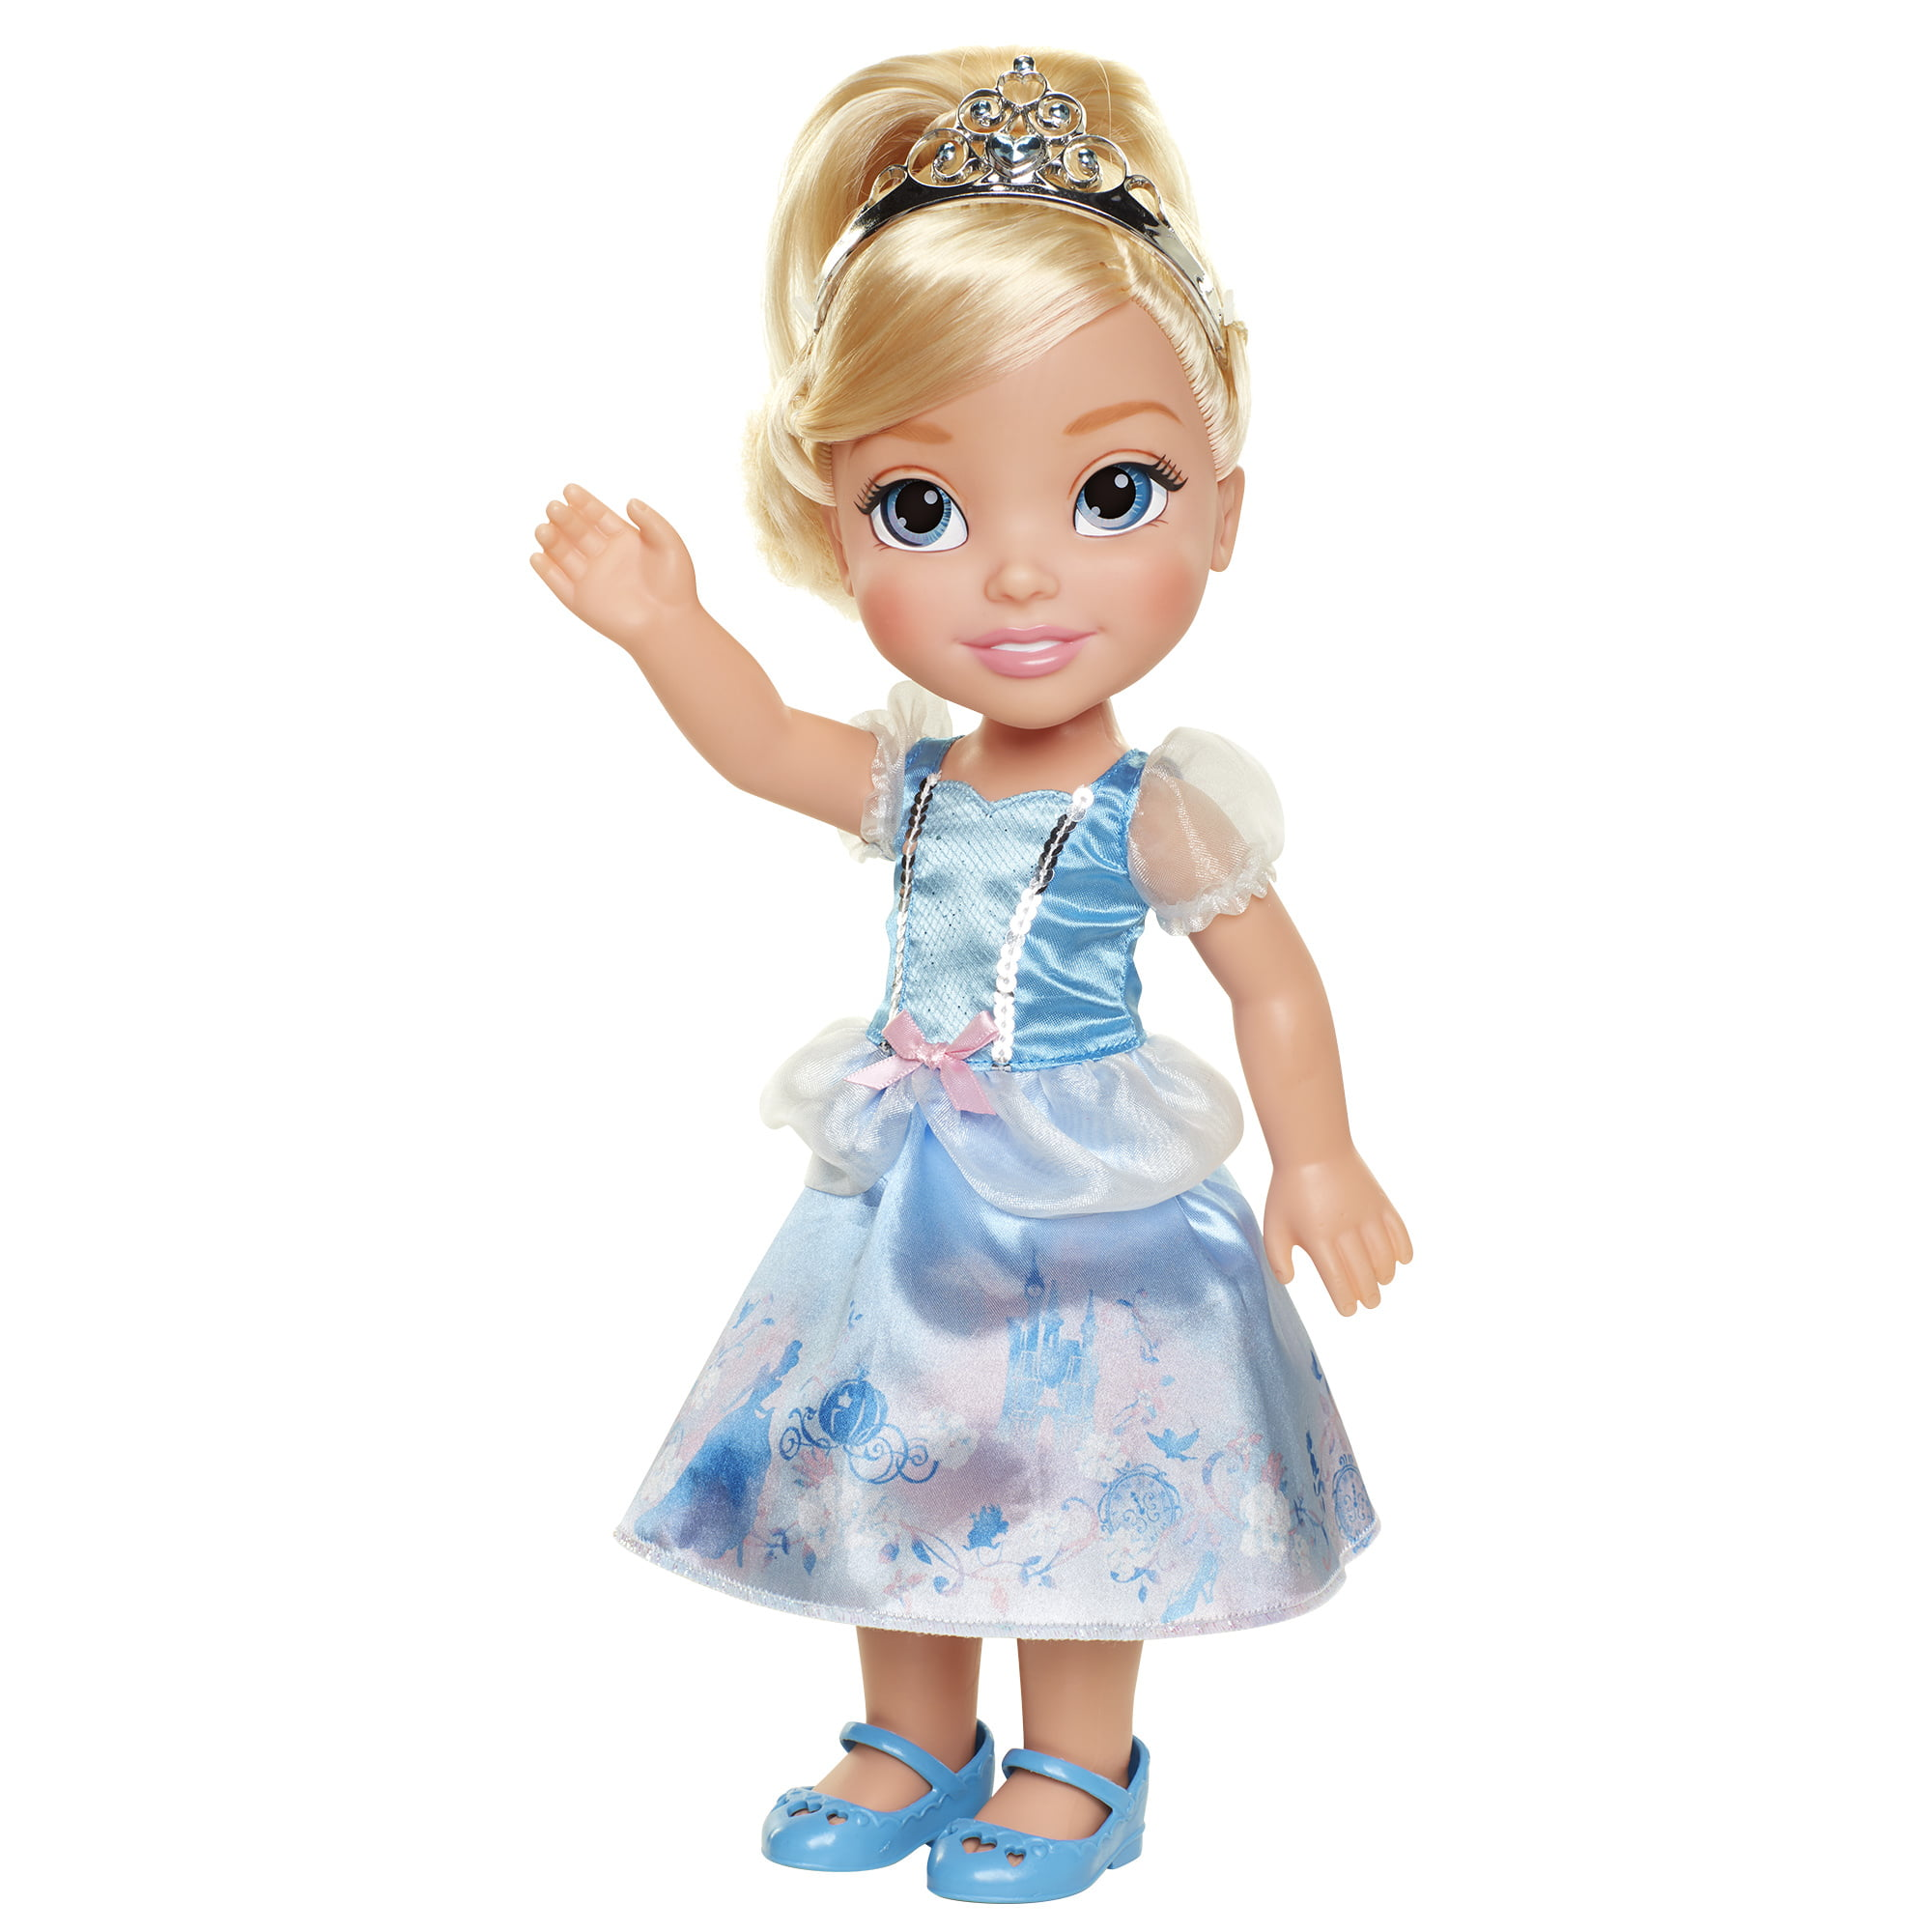 Disney Princess Explore Your World Cinderella Large Toddler Doll by Jakks Pacific